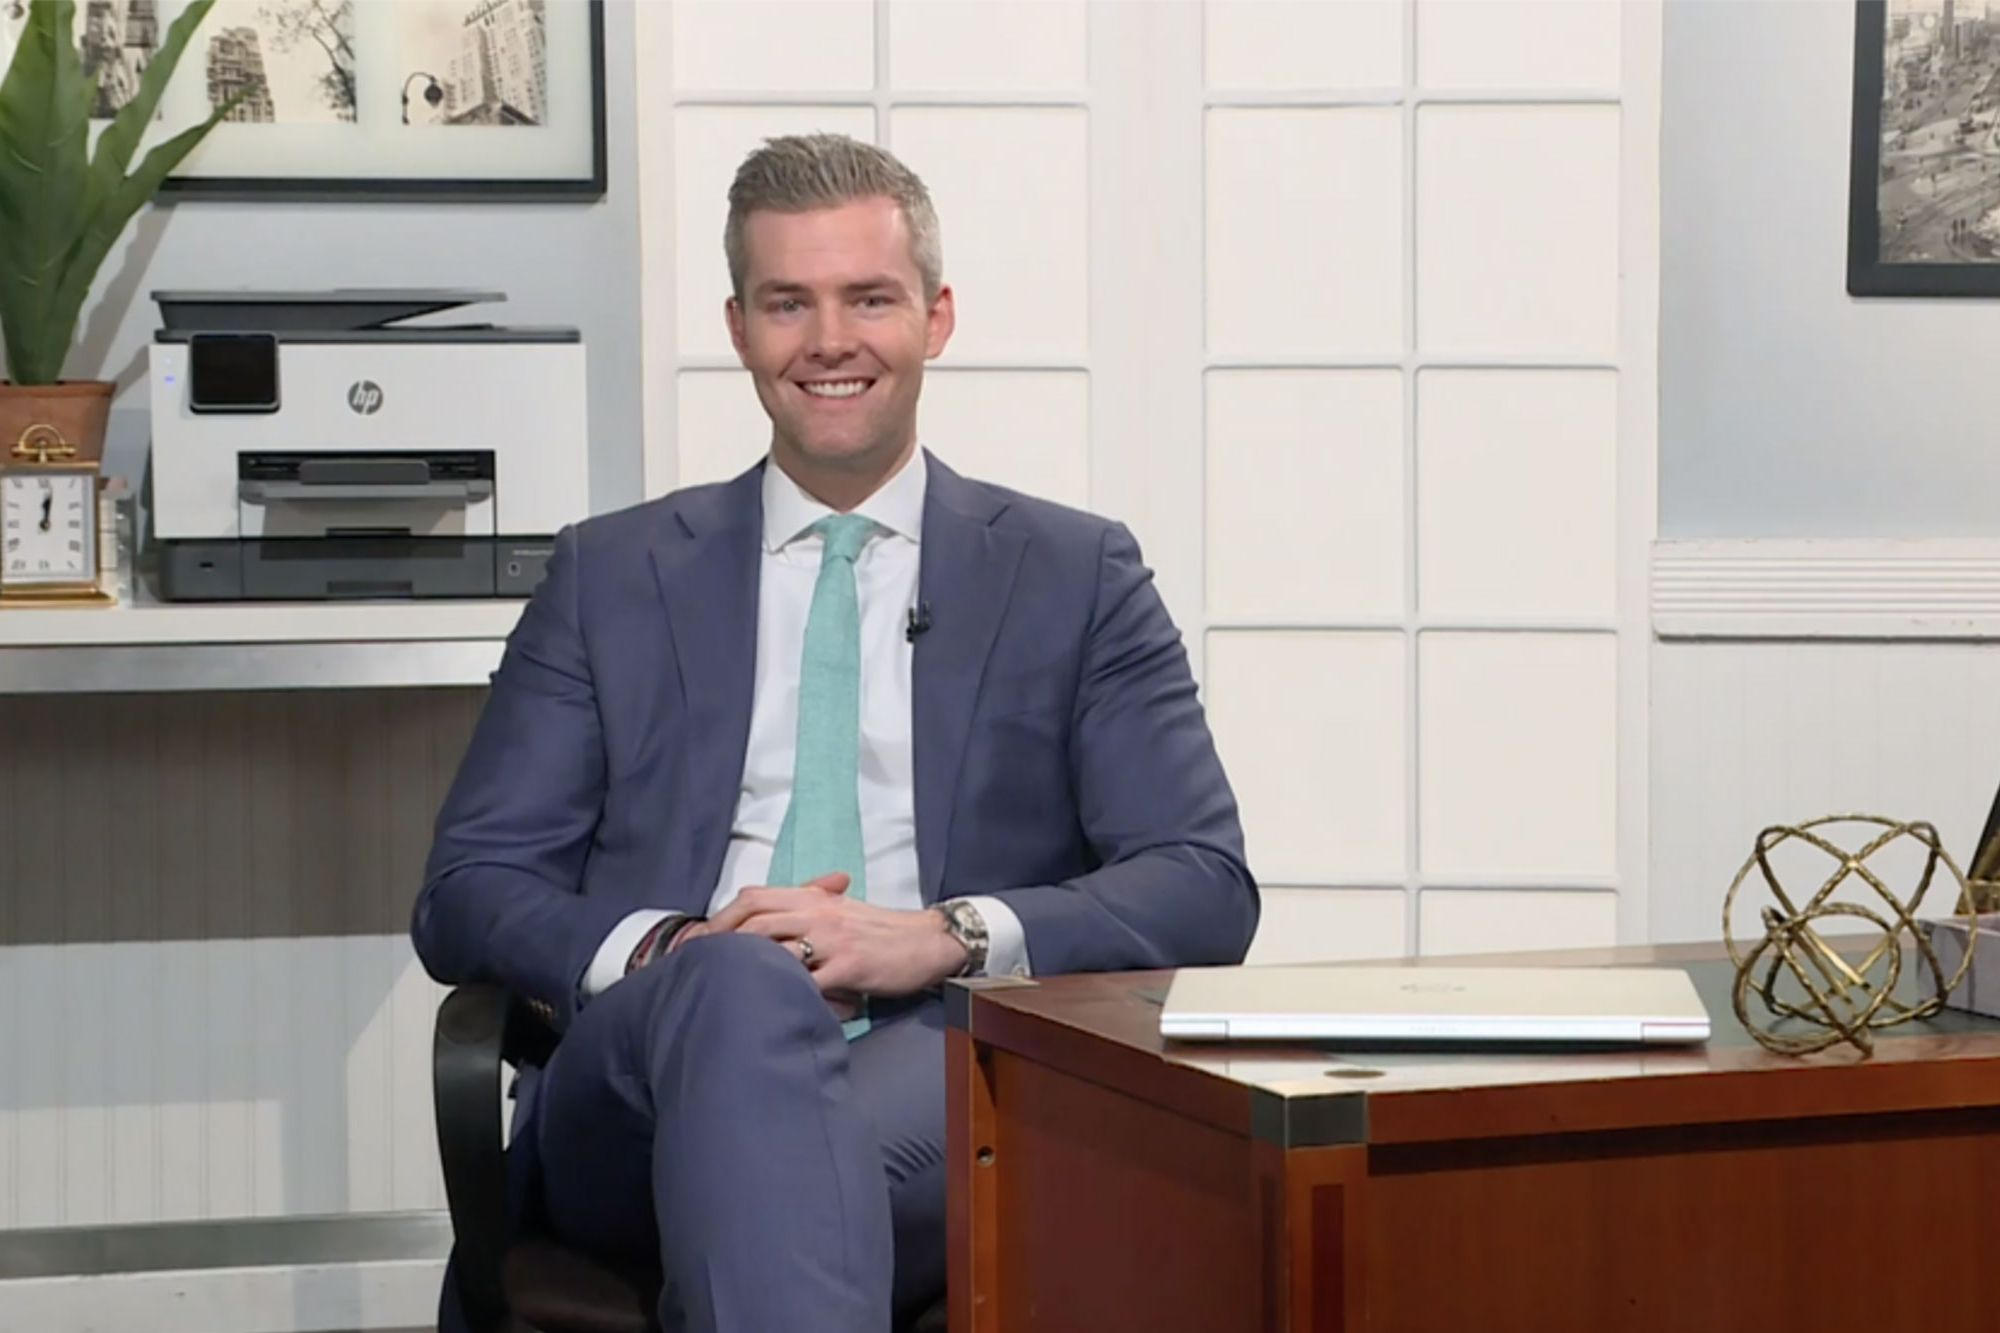 'Million Dollar Listing' Real Estate Expert Ryan Serhant on How Small Businesses Can Make a Big Impact